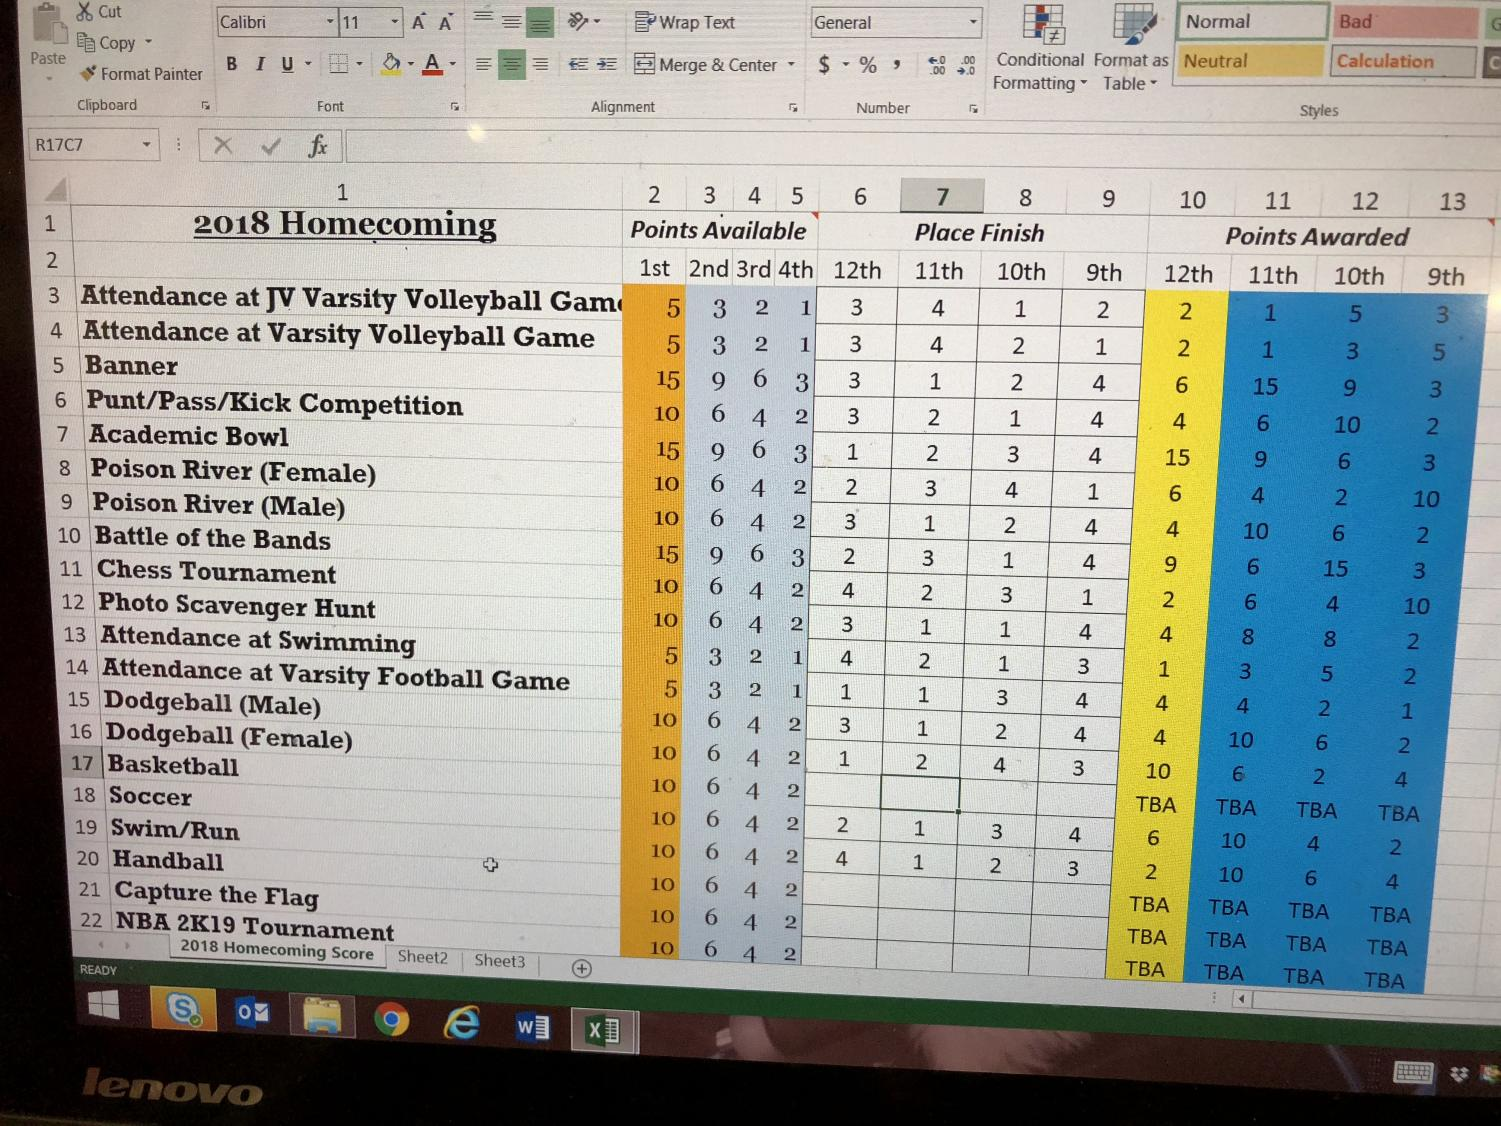 Scores to date